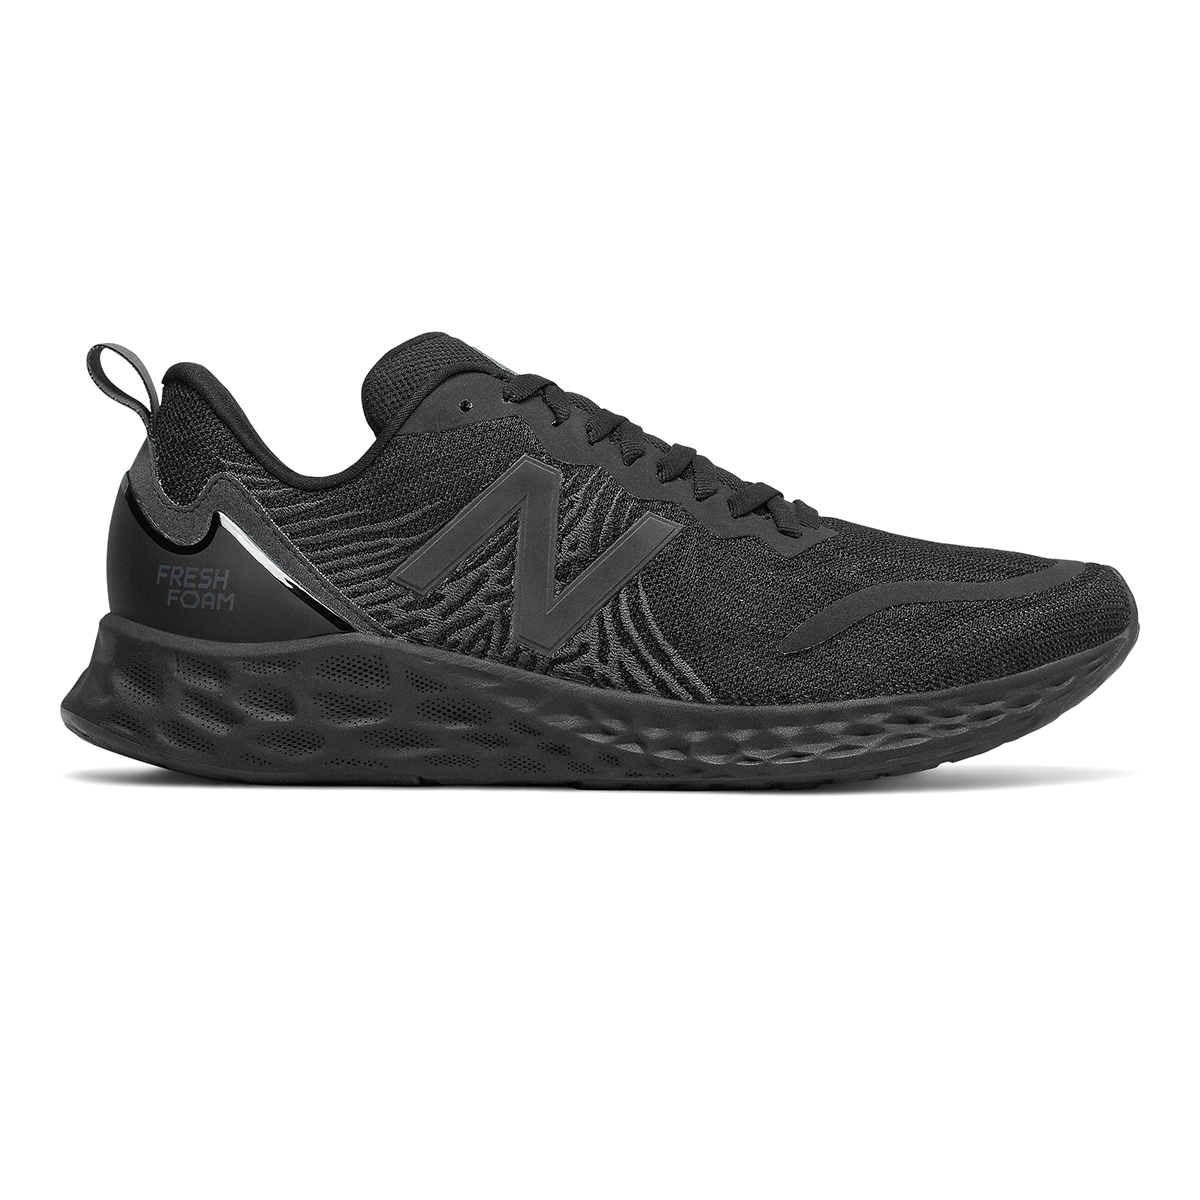 Men's New Balance Tempo Running Shoe - Color: Black - Size: 9 - Width: Wide, Black, large, image 1